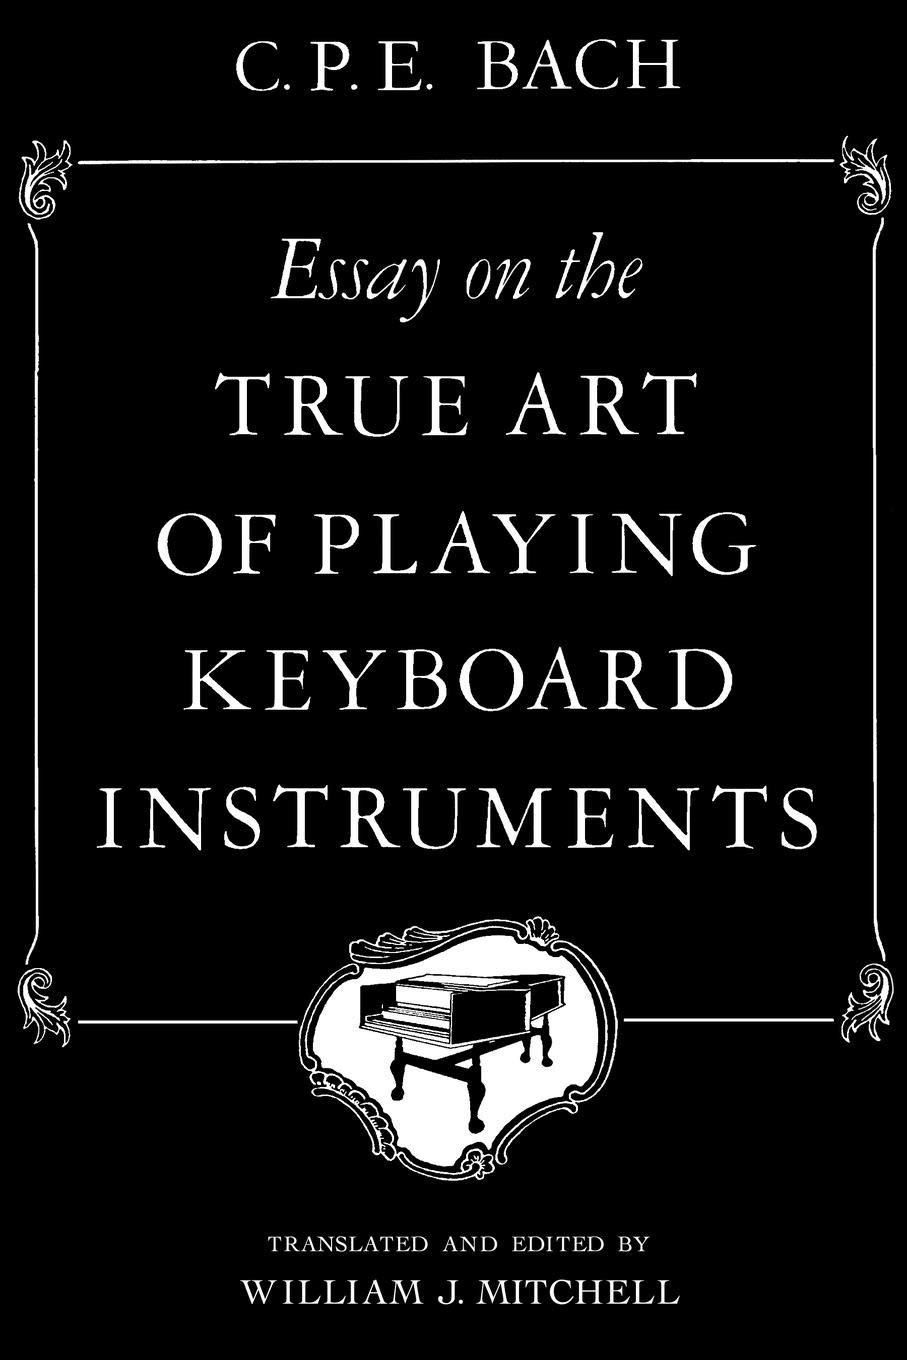 Essay On The True Art Of Playing Keyboard Instruments Cpe Bach  Essay On The True Art Of Playing Keyboard Instruments Cpe Bach William  J Mitchell  Amazoncom Books What Is Thesis Statement In Essay also History Of English Essay  How To Write An Essay Proposal Example